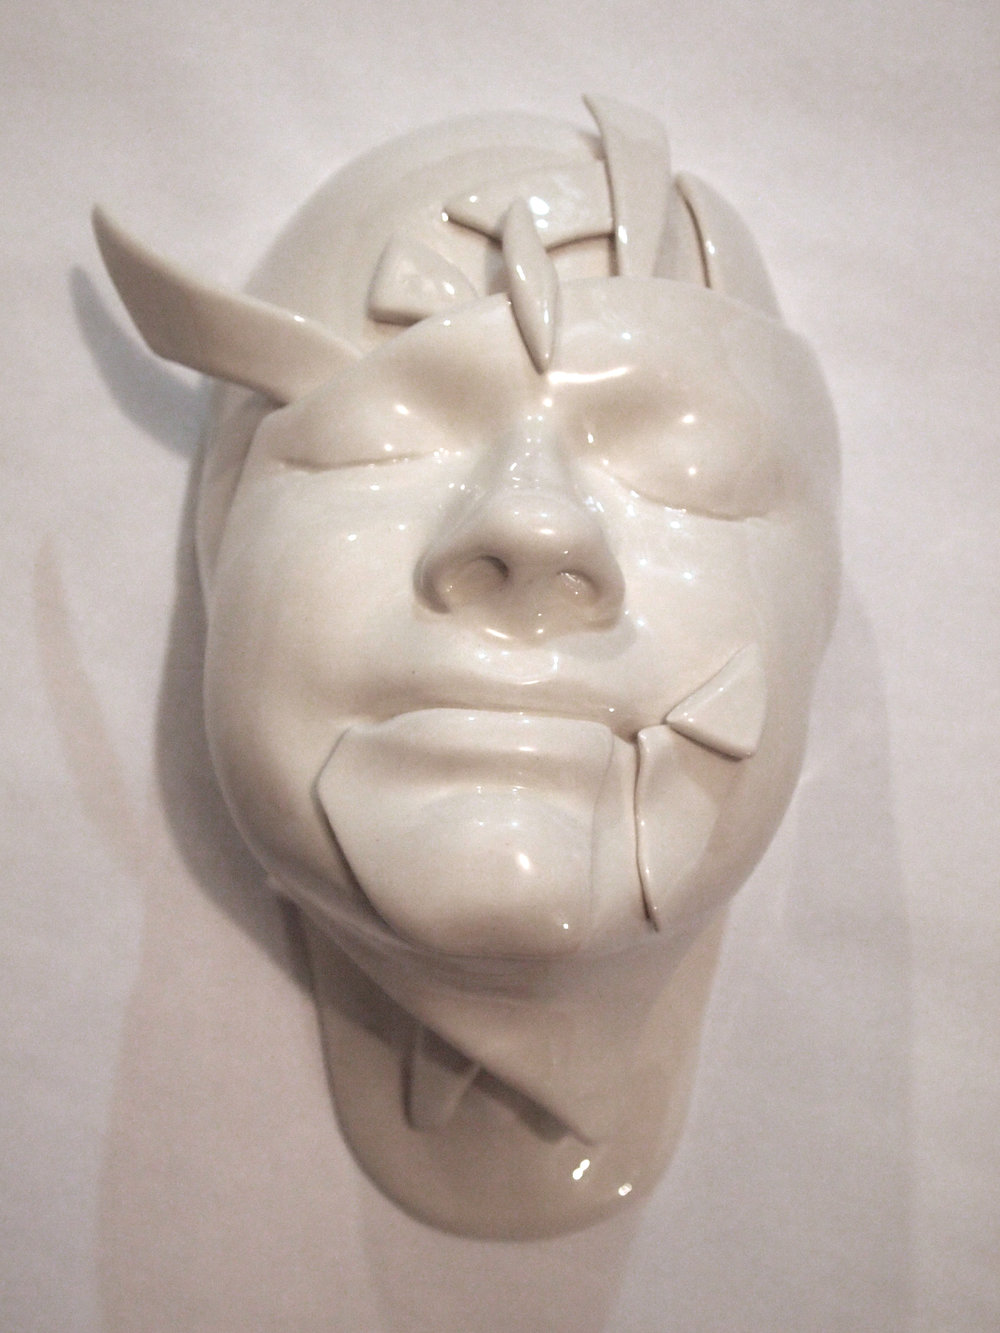 Craig Paul Nowak Ceramic Face art shattered